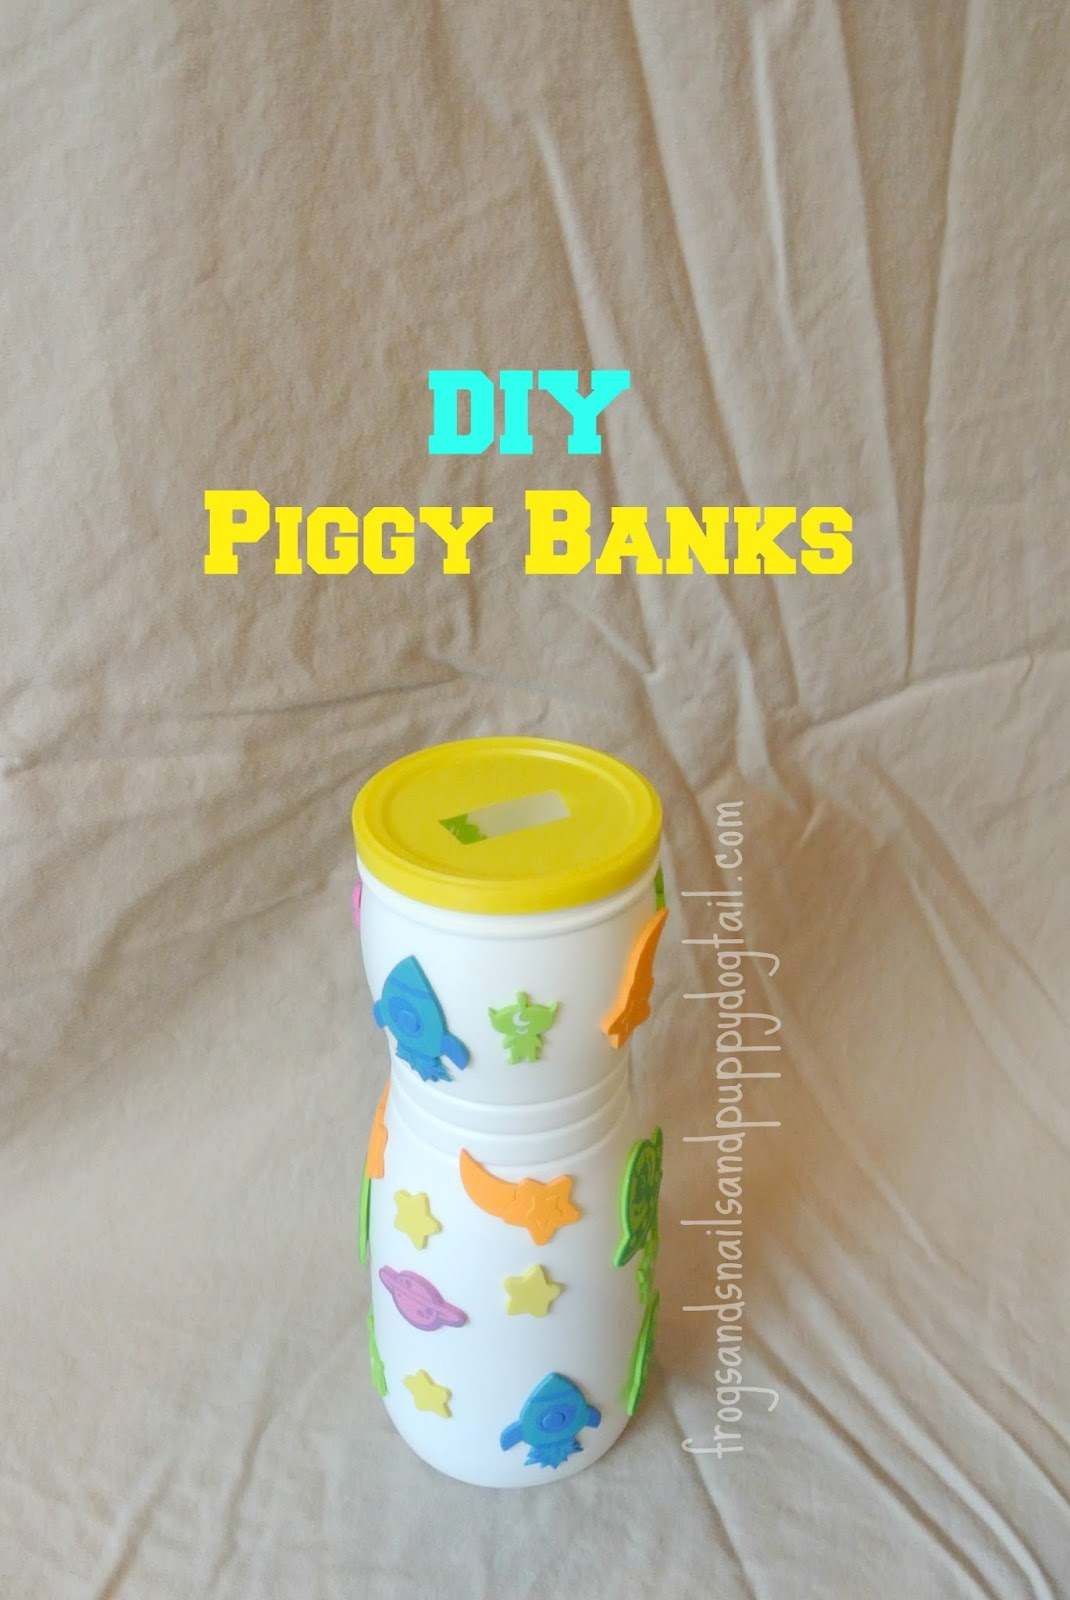 Diy or homemade piggy banks fspdt for How to make a simple piggy bank